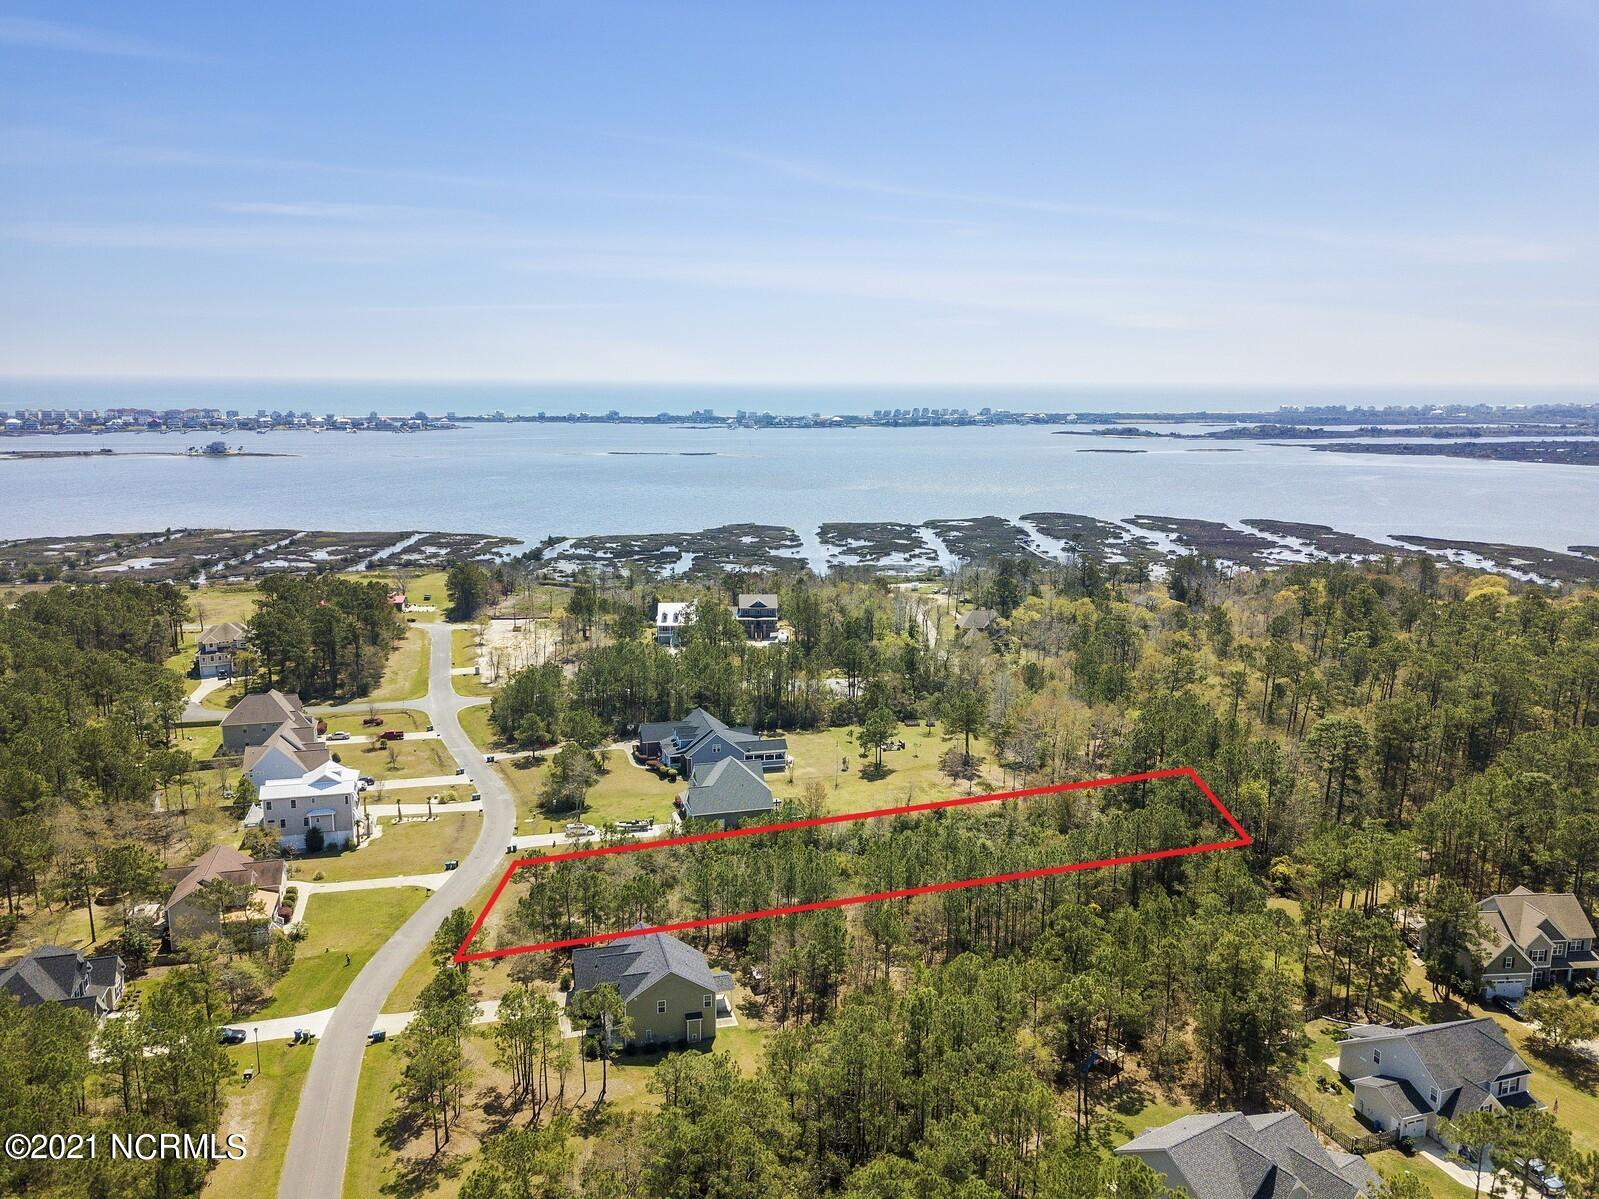 Here's your chance to build your dream home in the desirable, gated, waterfront community Mimosa Bay on the largest, best priced lot available! Situate your home on over an acre with plenty of yard and space from your neighbors... will you go with a ranch or a 2 story home? Contemporary or Coastal Cottage? Sewer and County Water are available to tap into, and the HOA will work with you on the perfect plan and design to fit into the neighborhood. By the way, you don't need a waterfront lot to use your boat, just launch from the community boat dock and you're off for a fun day on the water, park it at the storage lot and keep your driveway clear. Lounge by the swimming pool and get your daily dose of Vitamin D or work on your serve at the lighted tennis courts, even after dark. Need a place to host a gathering/shower/party so they aren't all at your house? The clubhouse just may be the perfect location for your event. Residents in the community have a playground to frolic on, as well as a boardwalk and picnic area for outdoor adventure and exploration. With all of this, what more could you ask for? Don't wait, call today to for a steal of a deal on this huge lot before it's too late!